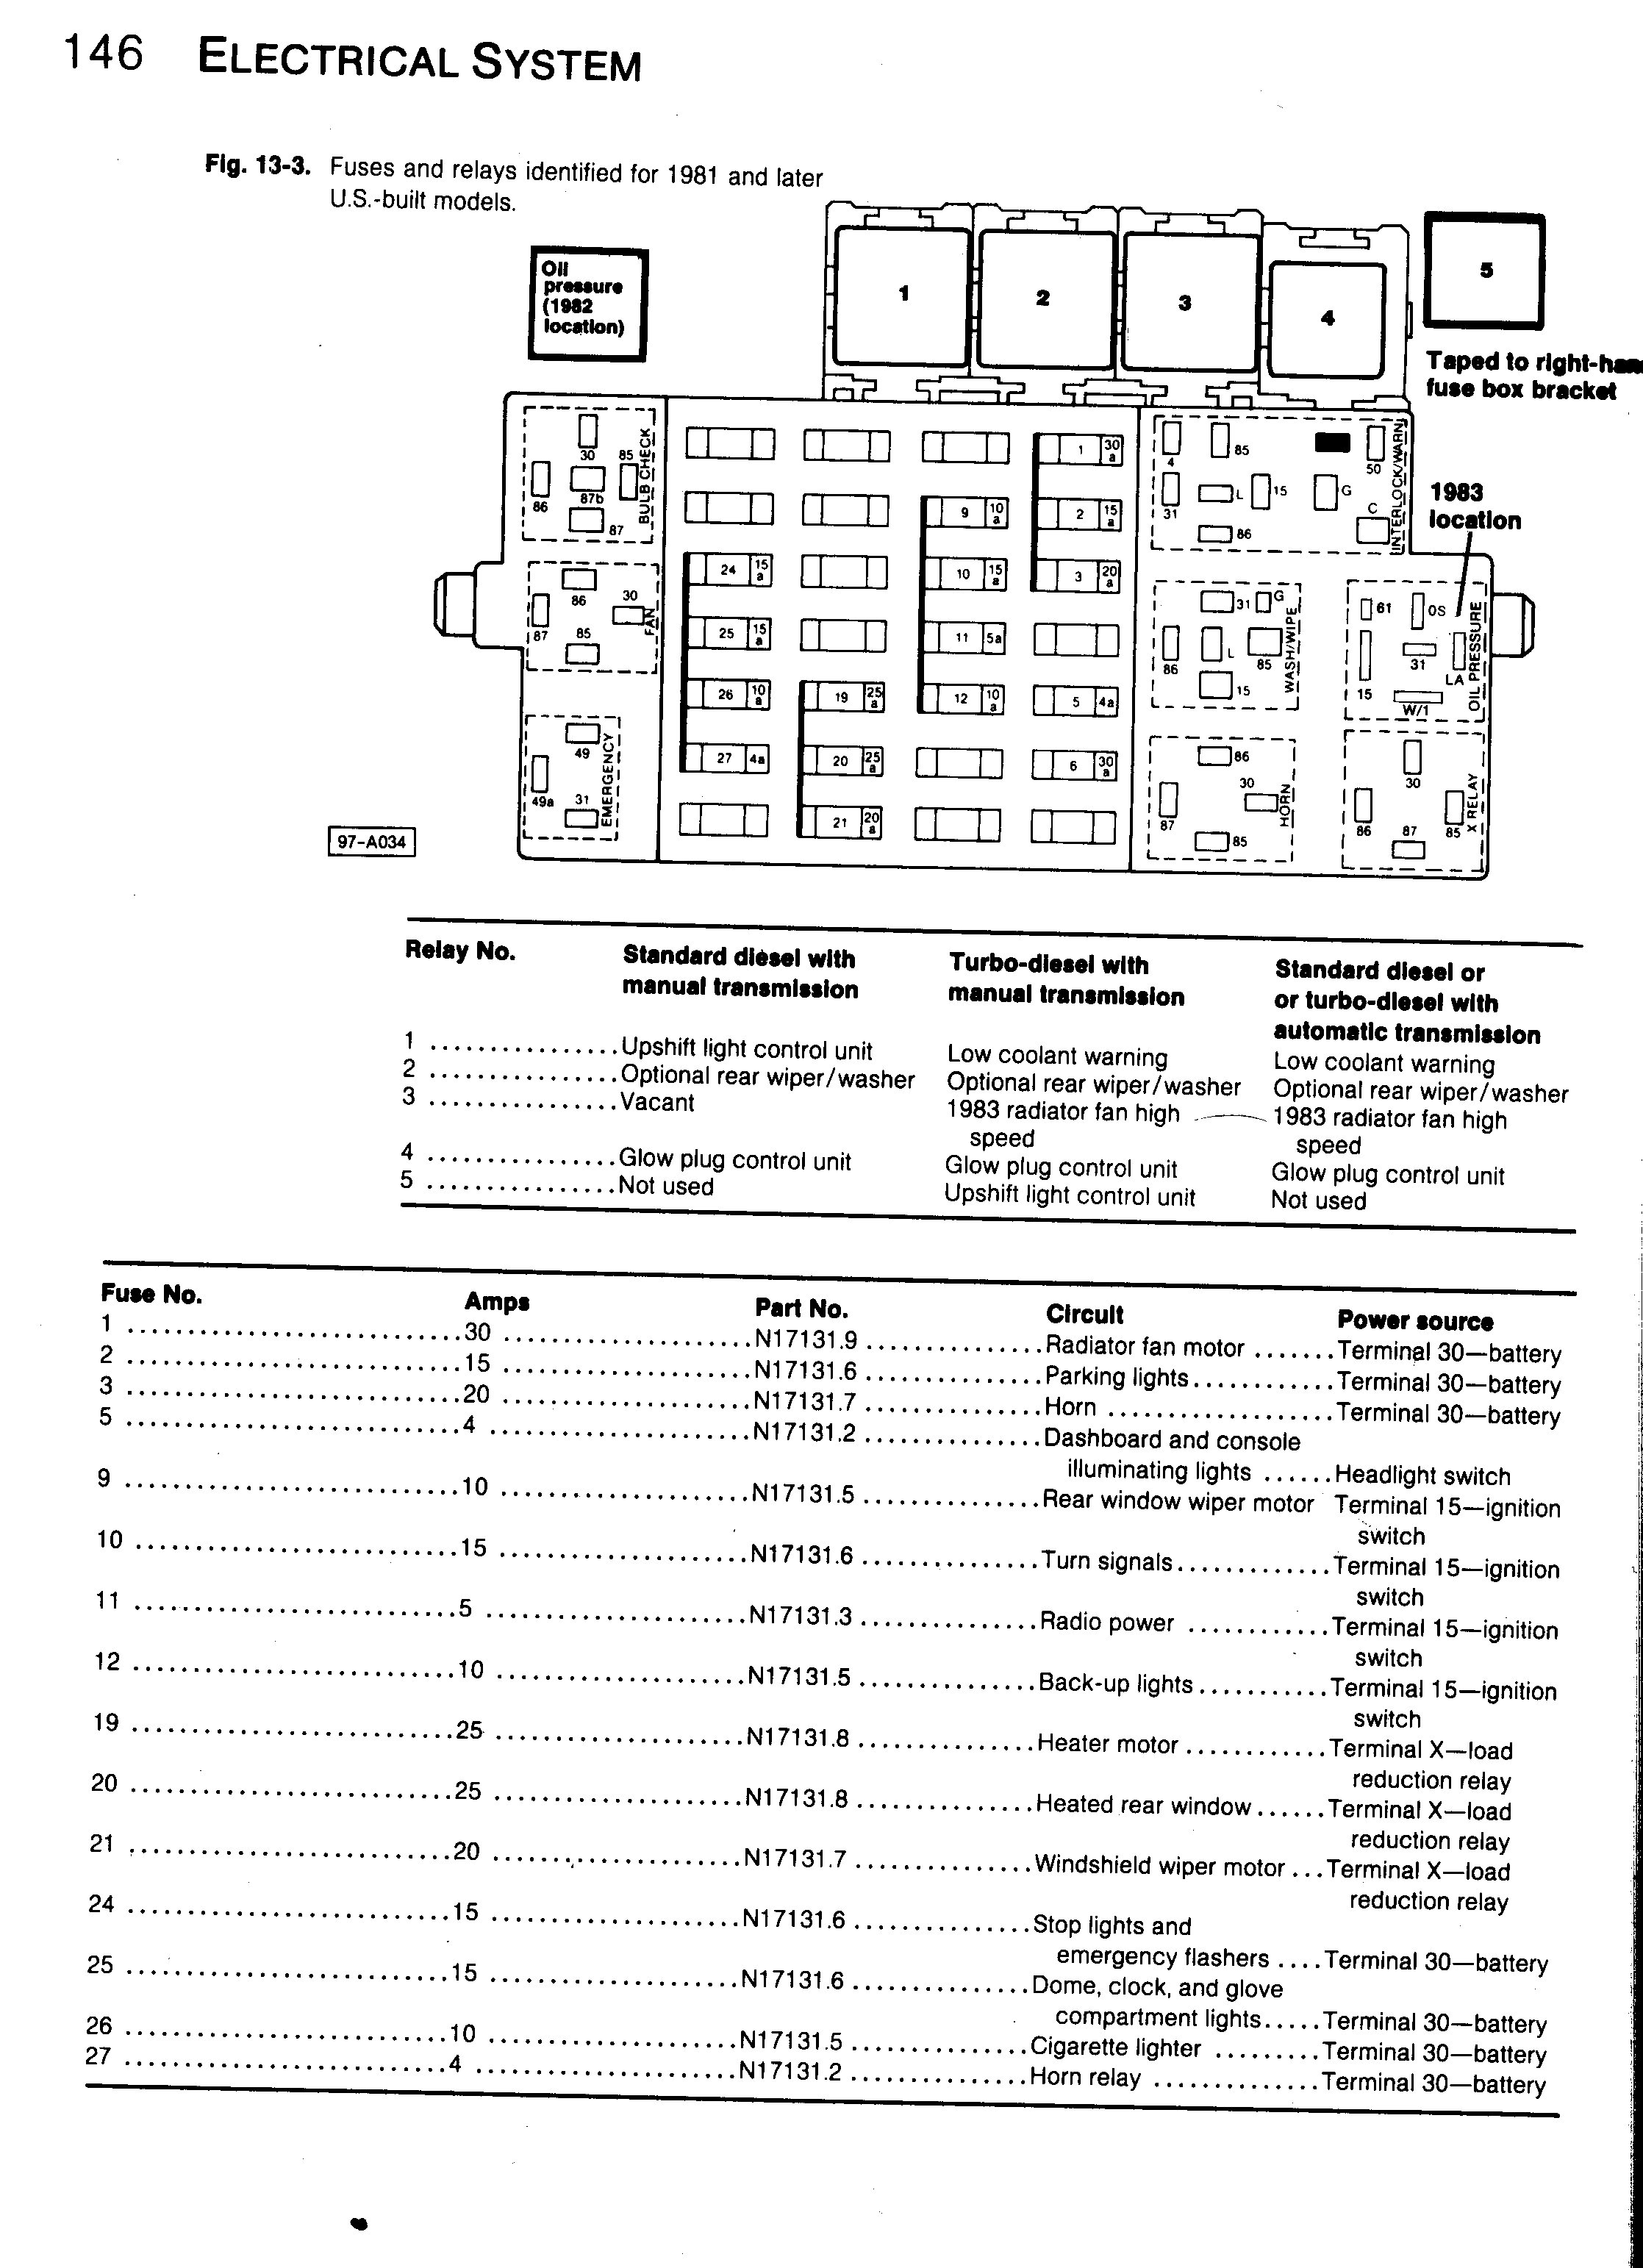 Fuse Box For 2000 Beetle - Crank Sensor Wiring Diagram 2006 Express for  Wiring Diagram SchematicsWiring Diagram Schematics